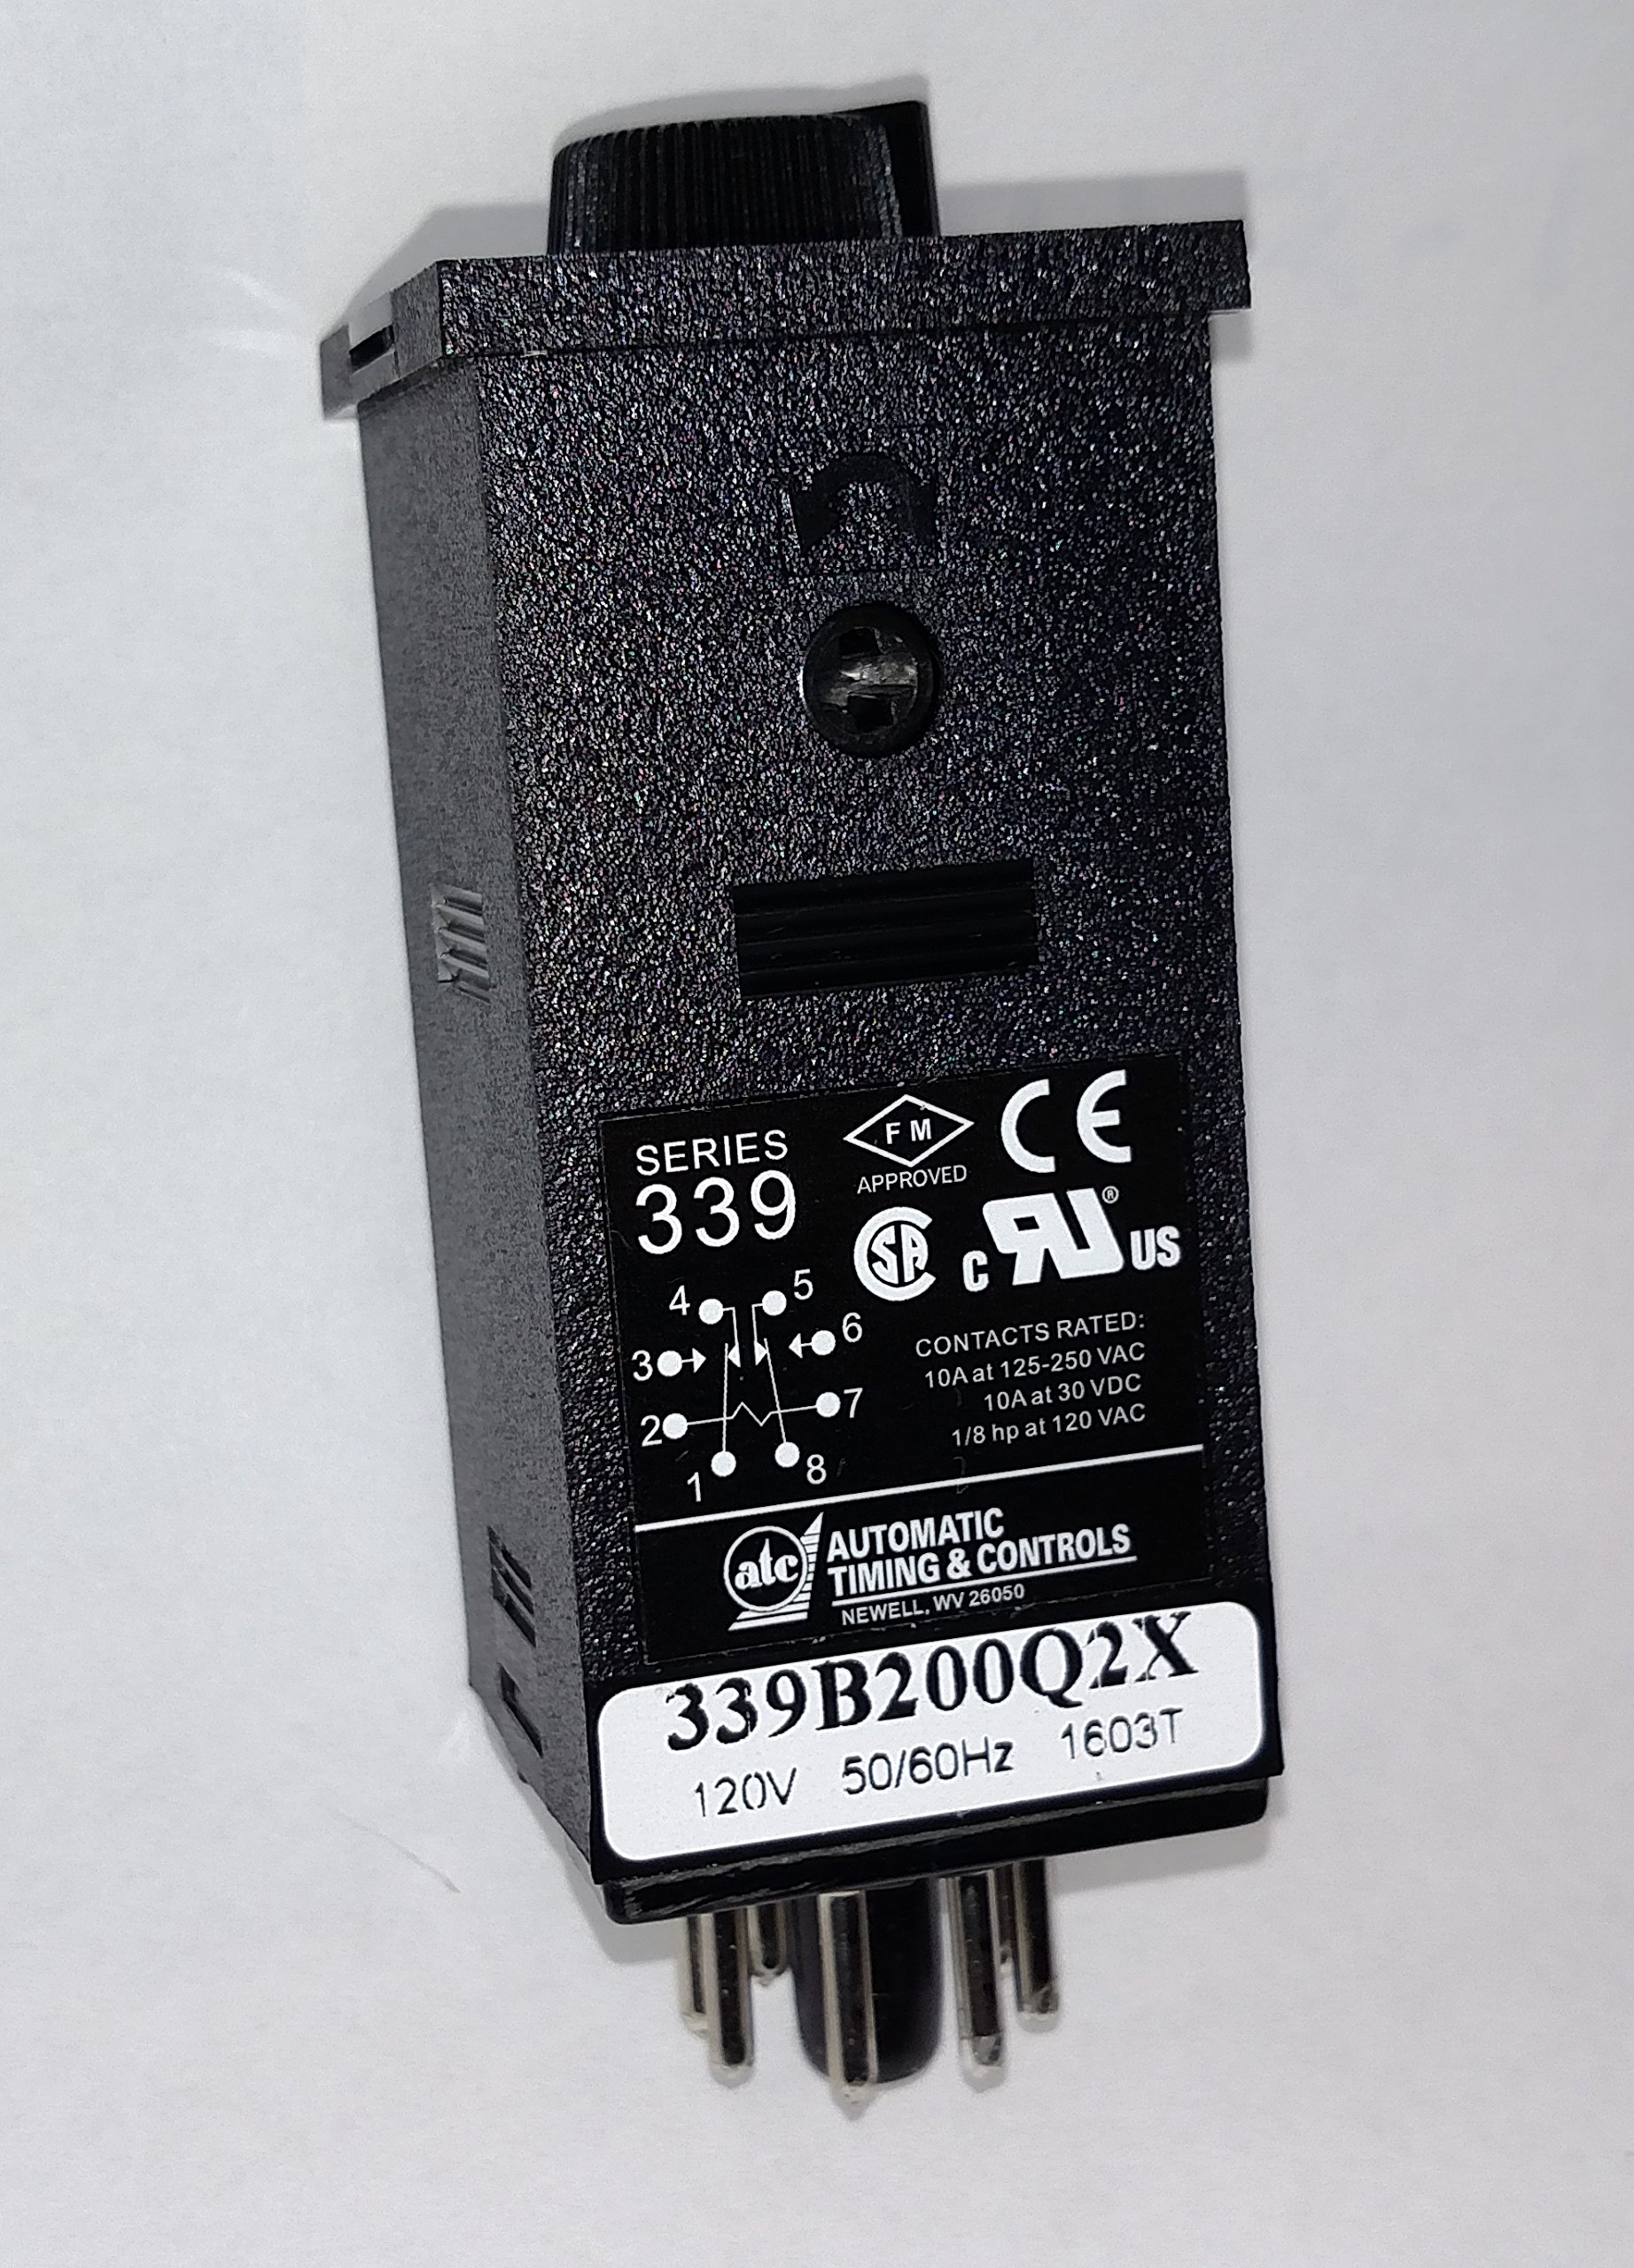 ATC 339B-200-Q-2-X Plug-In Adjustable TDR, 6 Dial-Selected Ranges, 120 VAC, 50/60 Hz, On-Delay, Interval Mode, Standard